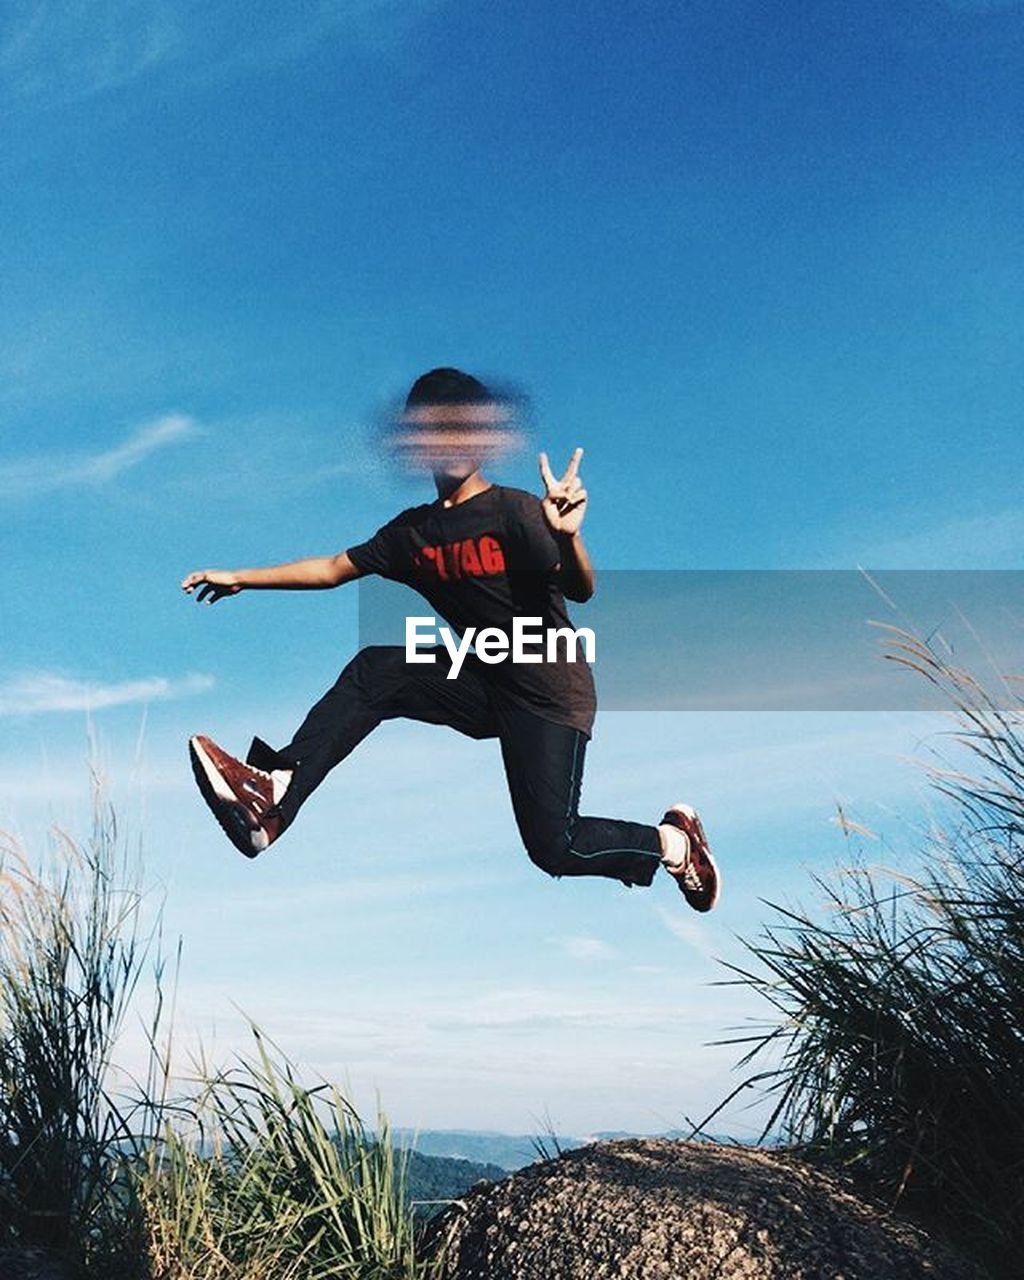 mid-air, jumping, one person, full length, day, outdoors, sky, blue, energetic, one man only, nature, only men, young adult, people, adult, adults only